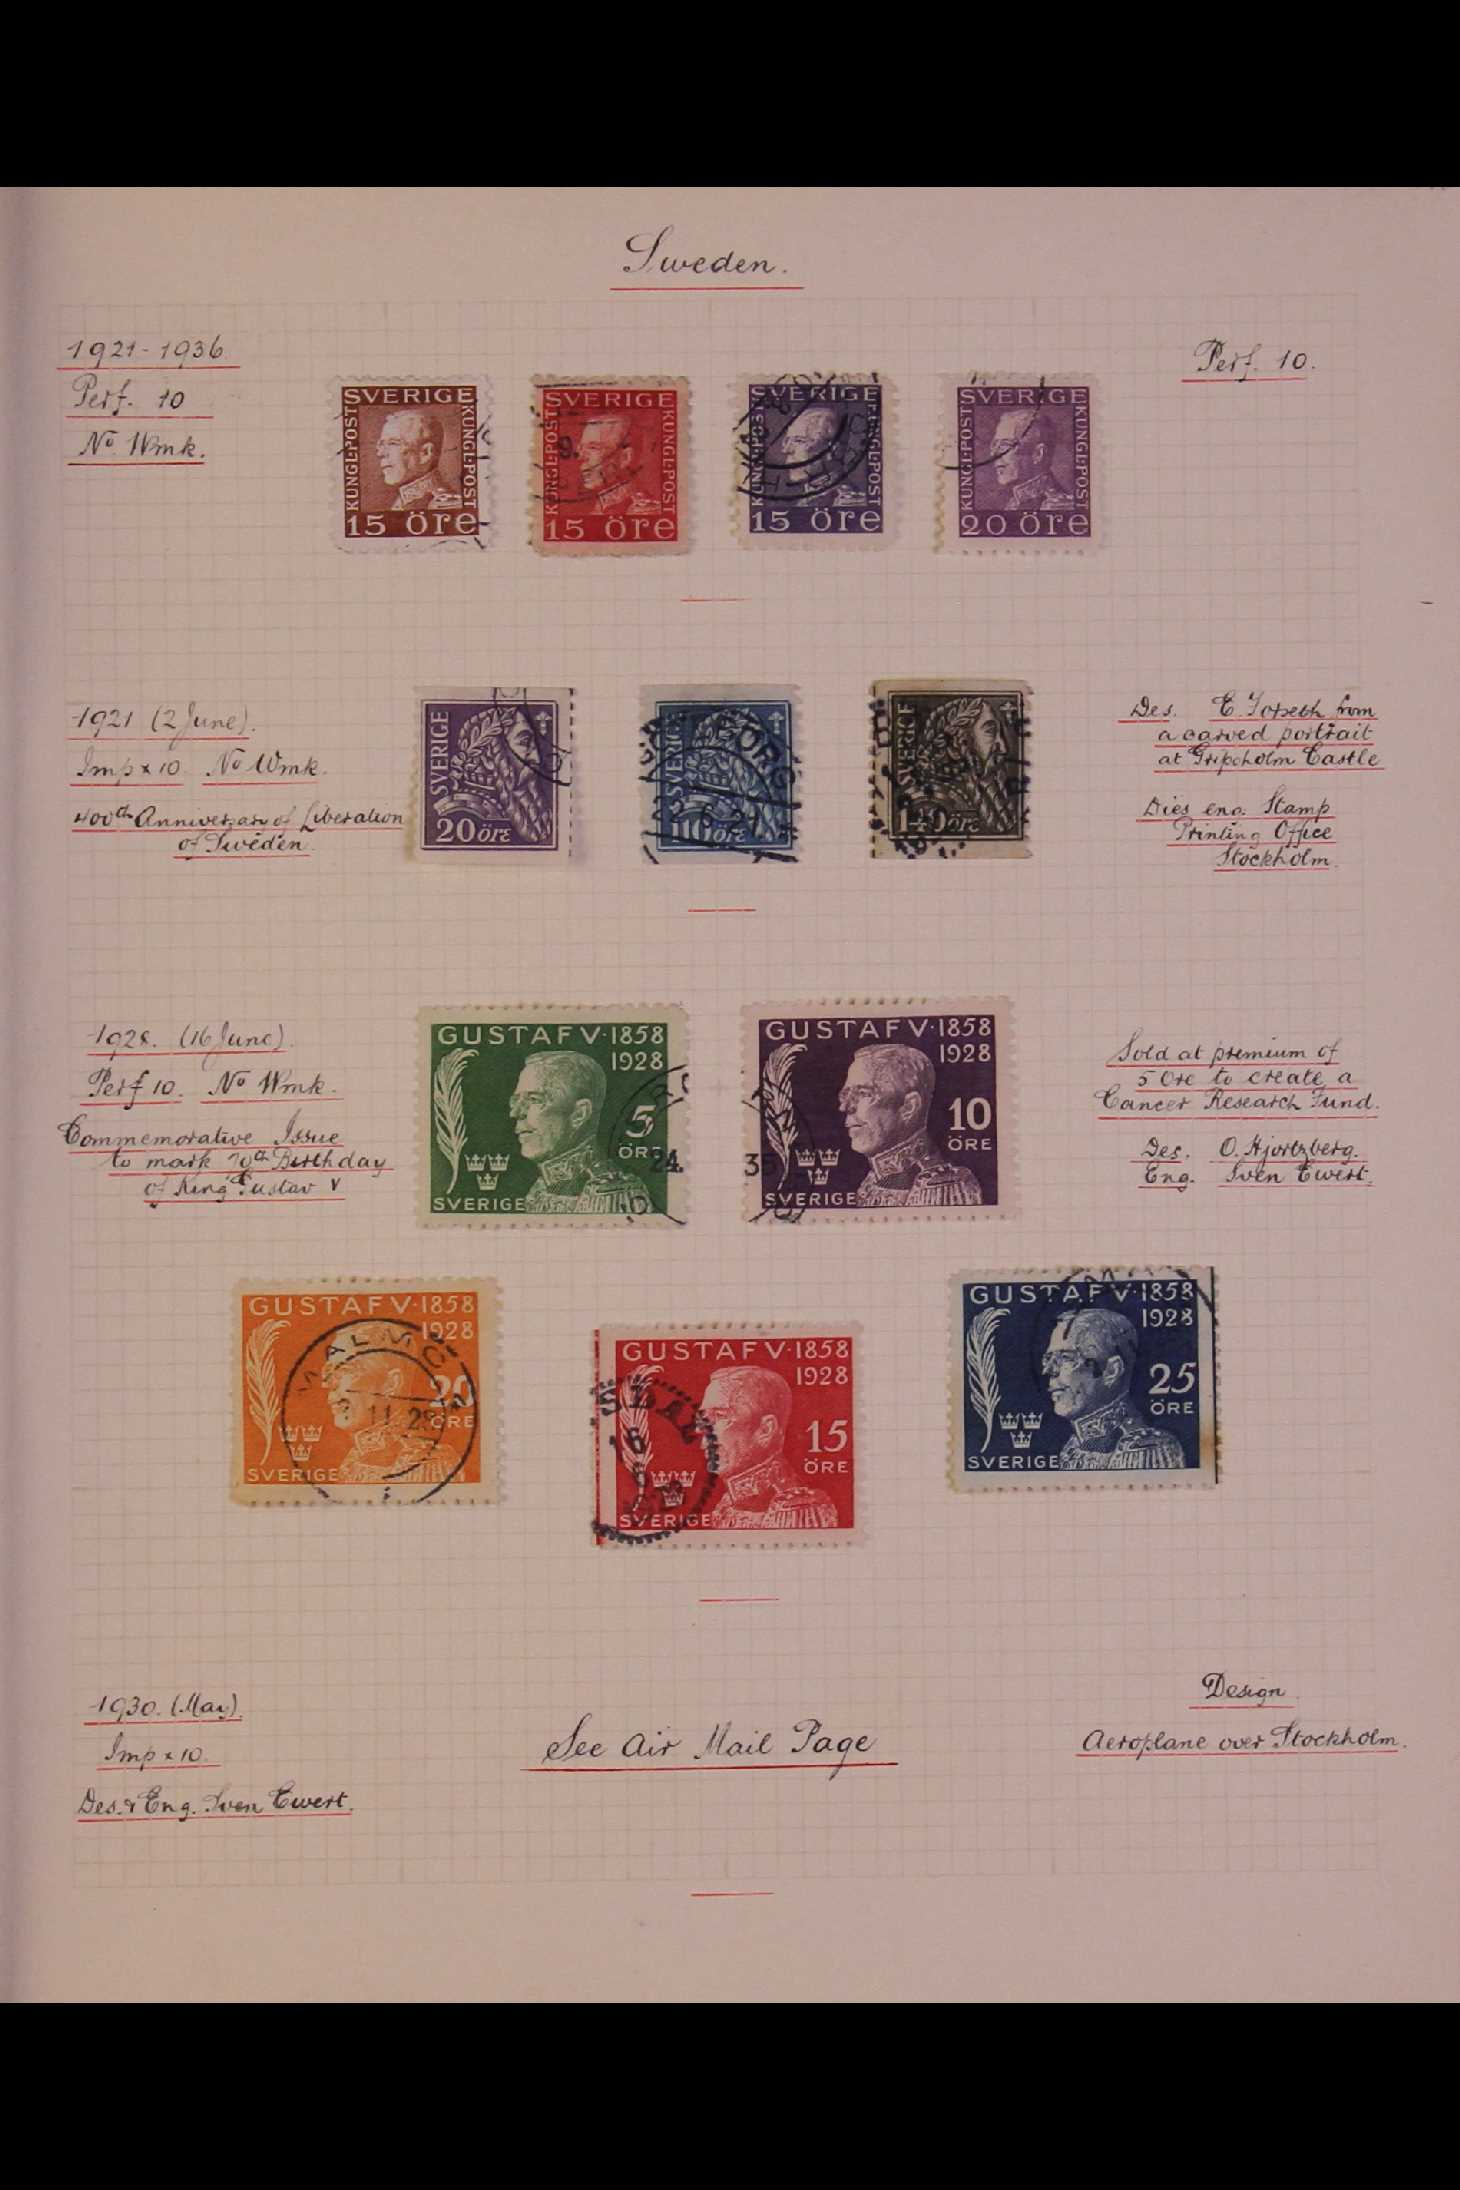 SWEDEN 1903-1966 USED COLLECTION incl. 1903 5k GPO, 1910-19 wmk Crown set, 1916 Landstorm surcharges - Image 7 of 12